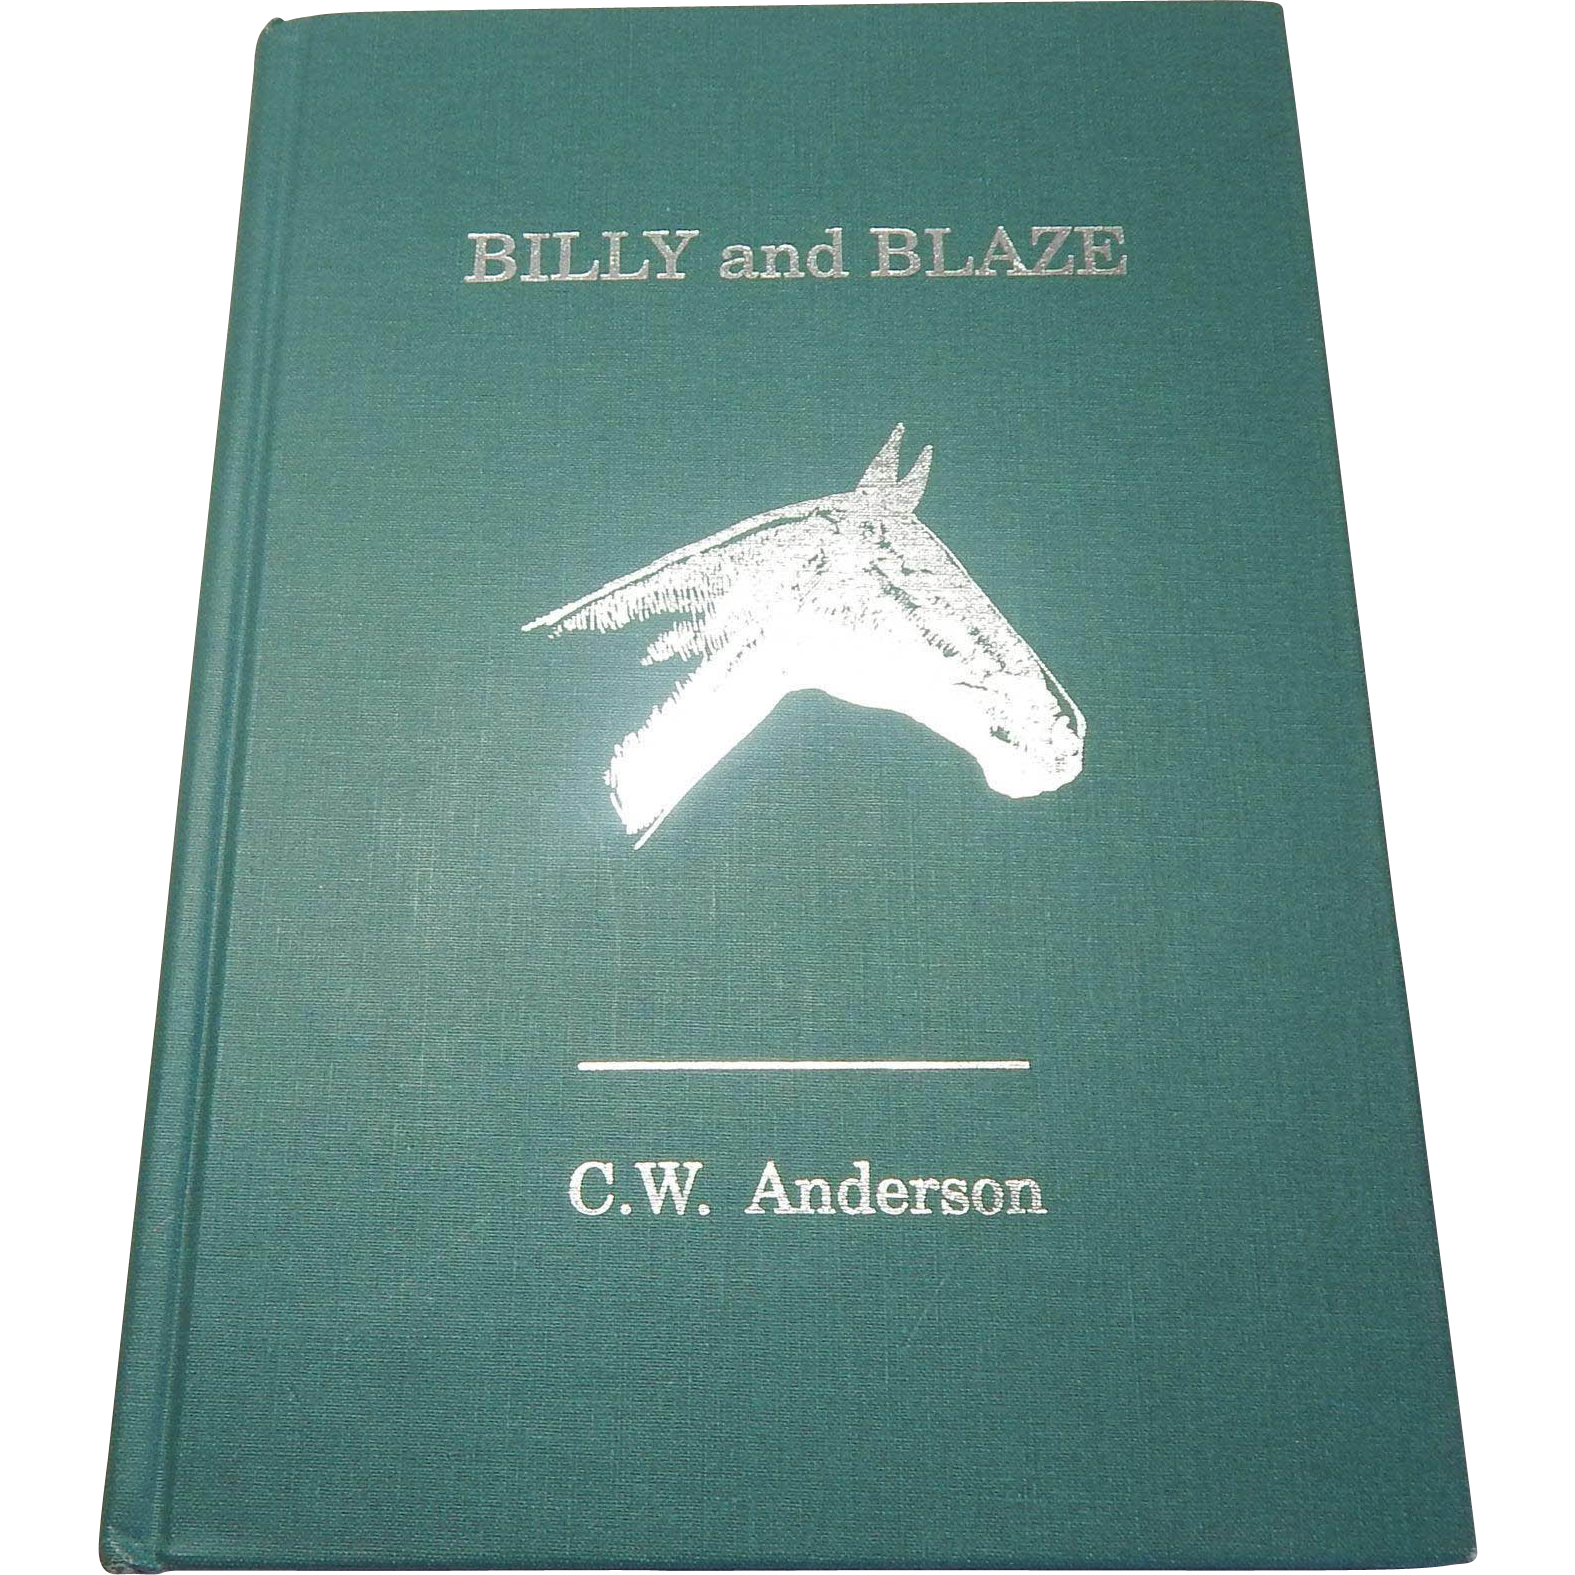 Billy and Blaze by C. W. Anderson